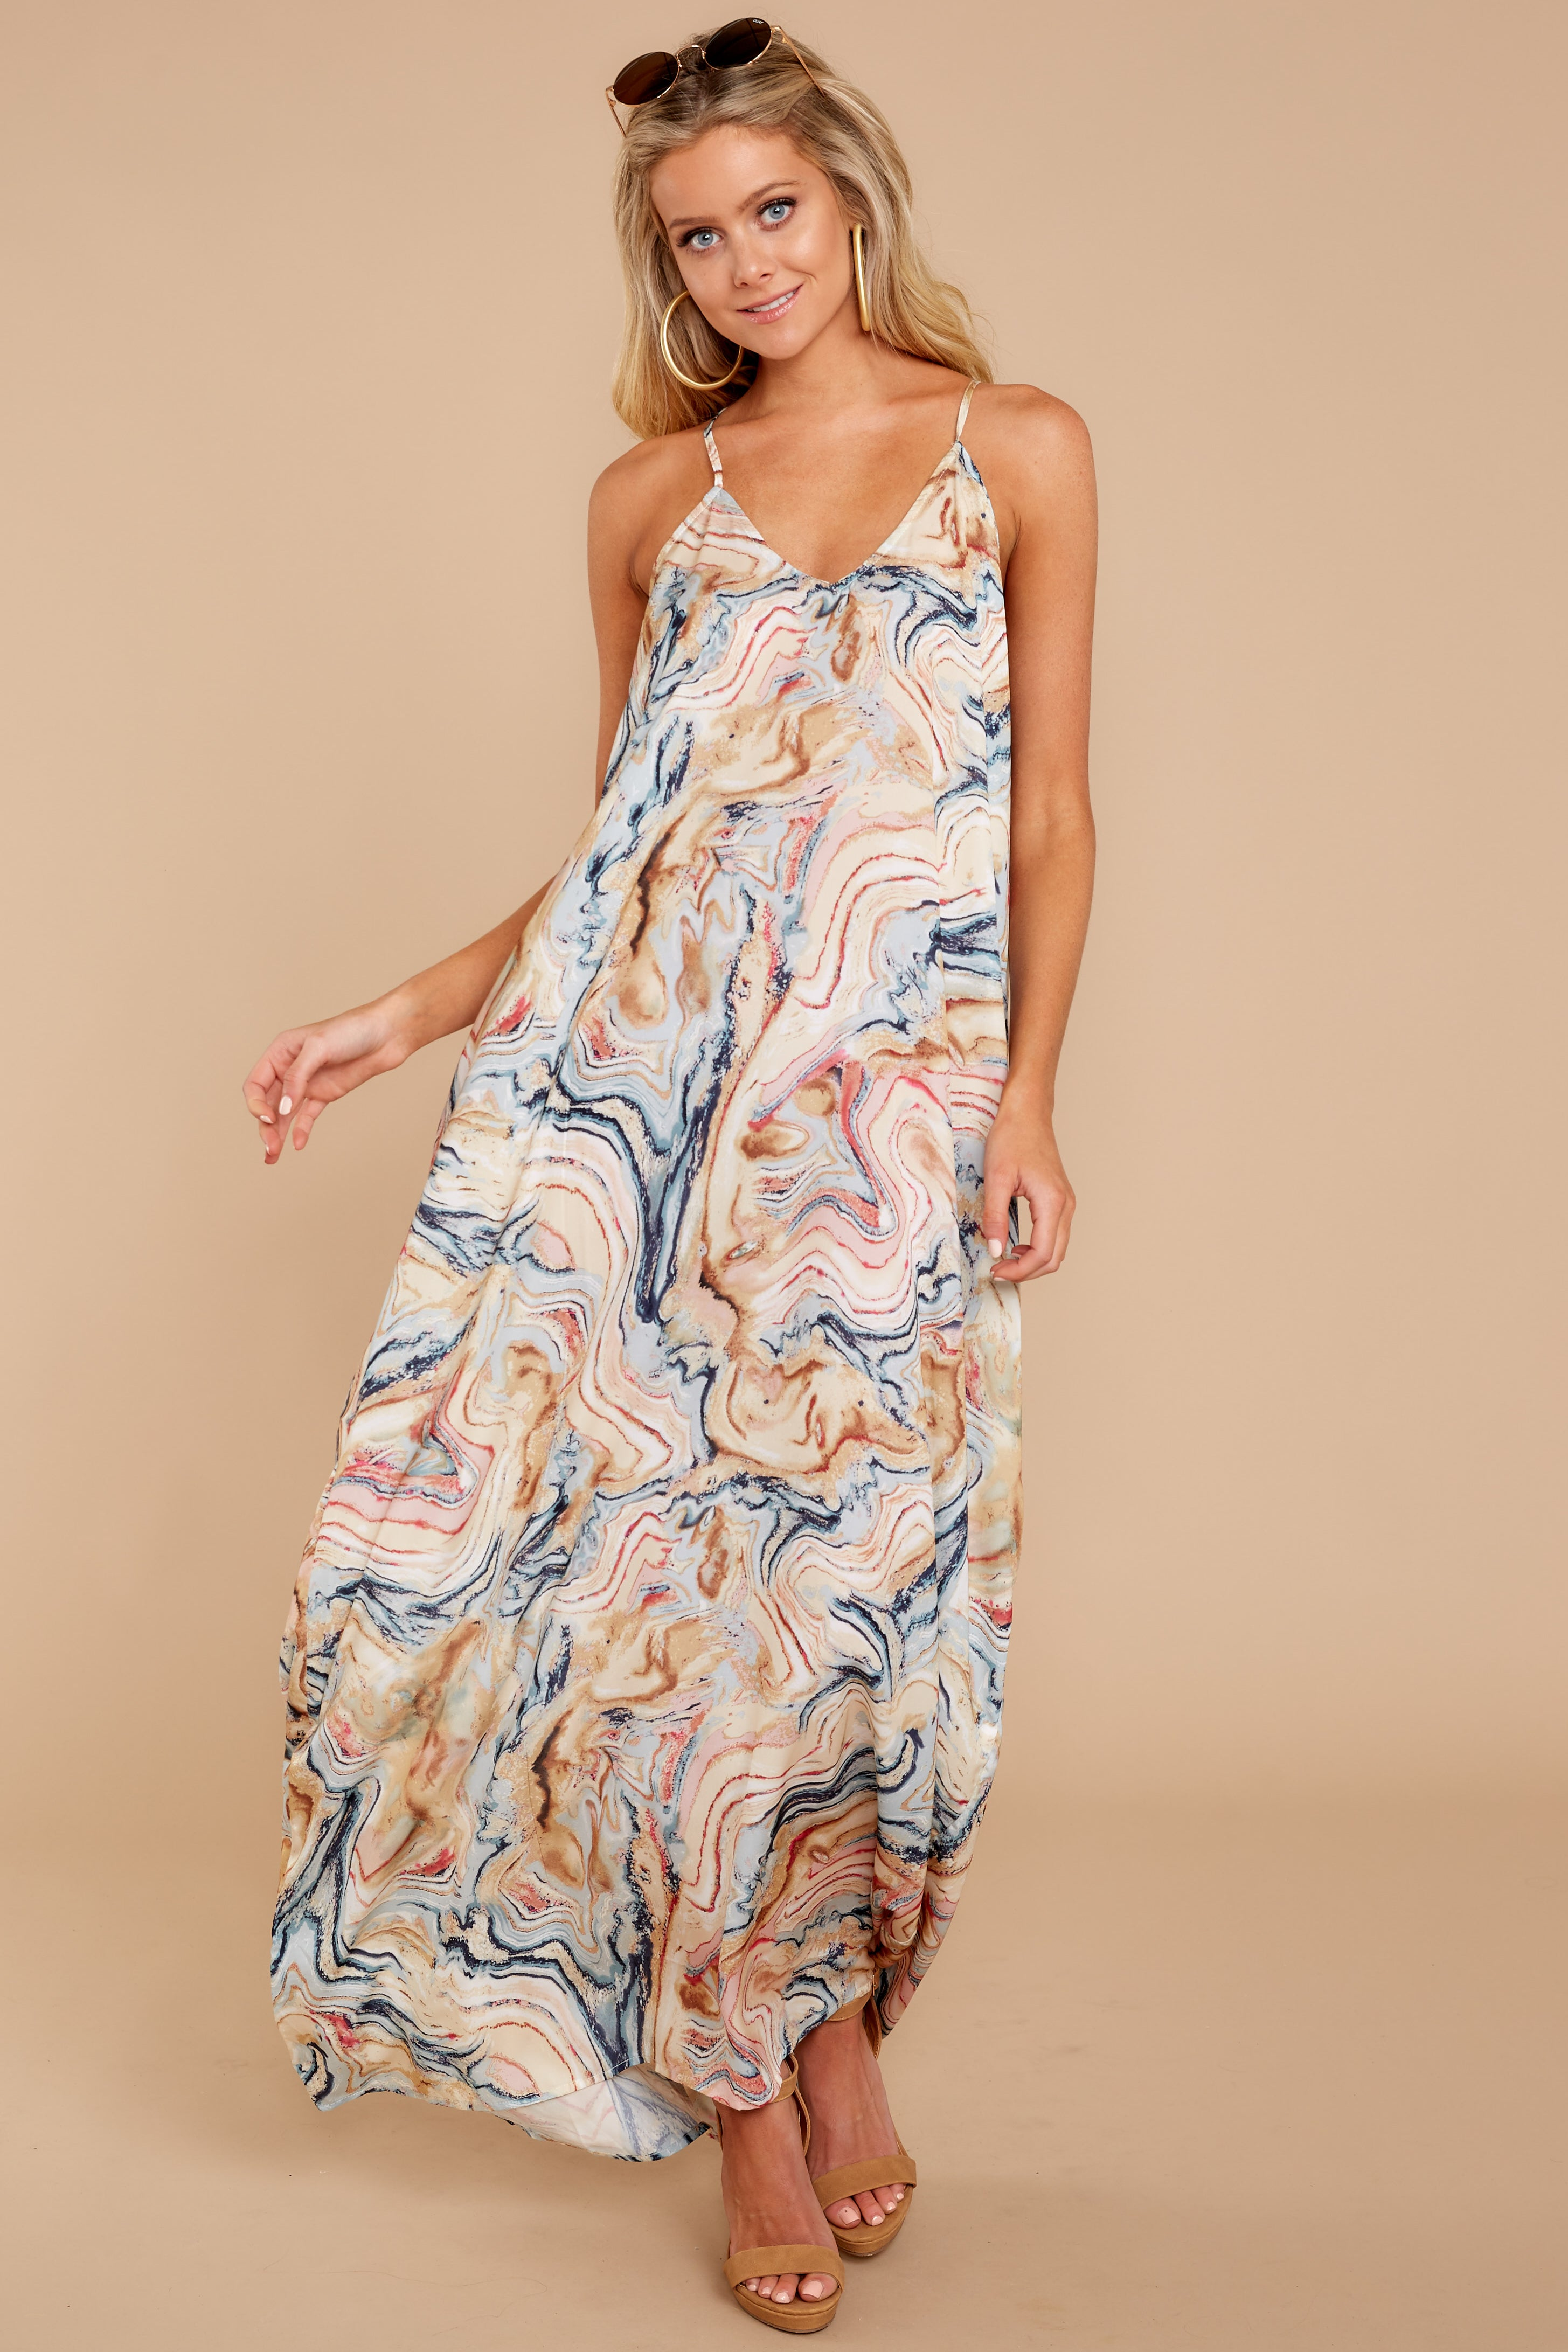 1 Over Land And Sea Tan Multi Print Maxi Dress at reddressboutique.com